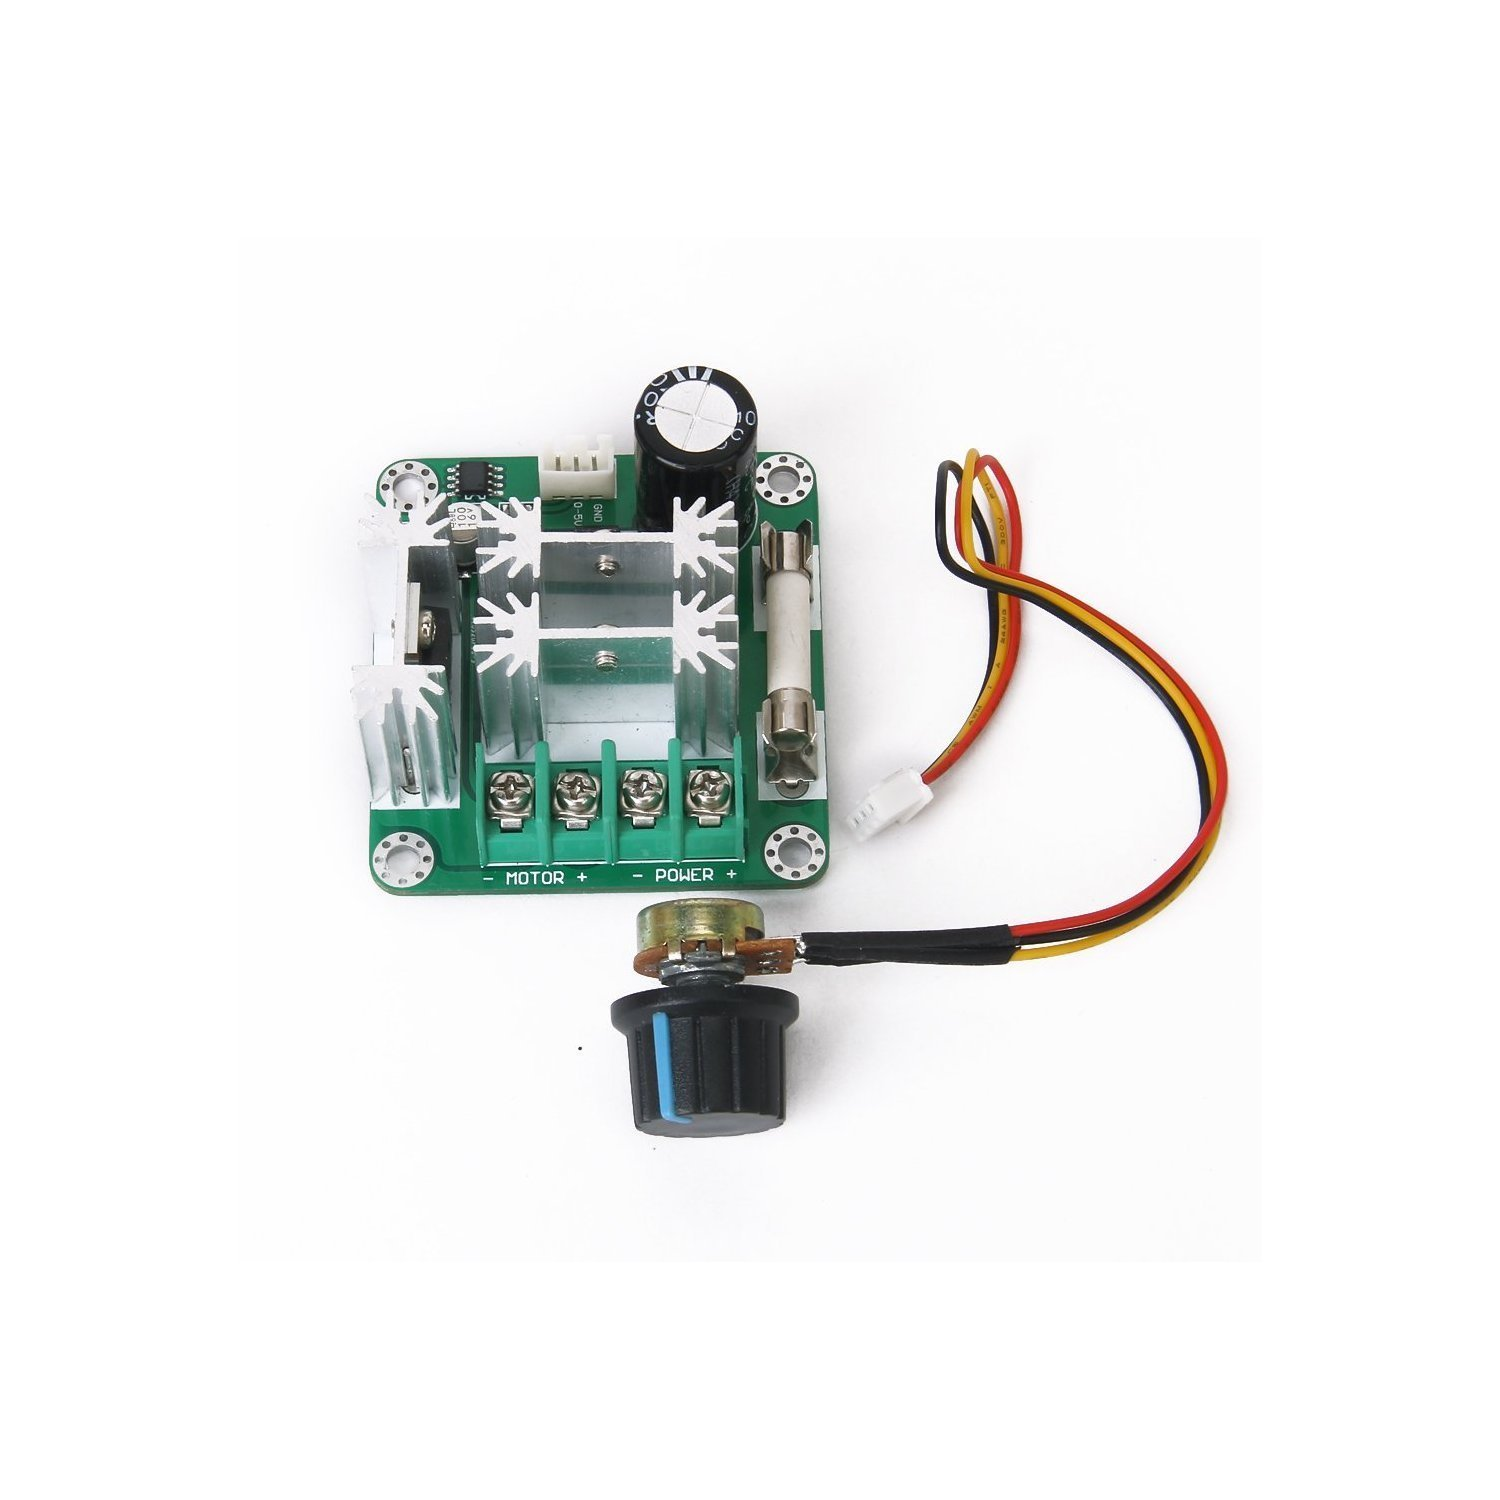 Smakn 6v 90v 15a Pulse Width Modulation Pwm Dc Motor Speed Control Diy Circuit Design Switch Industrial Scientific